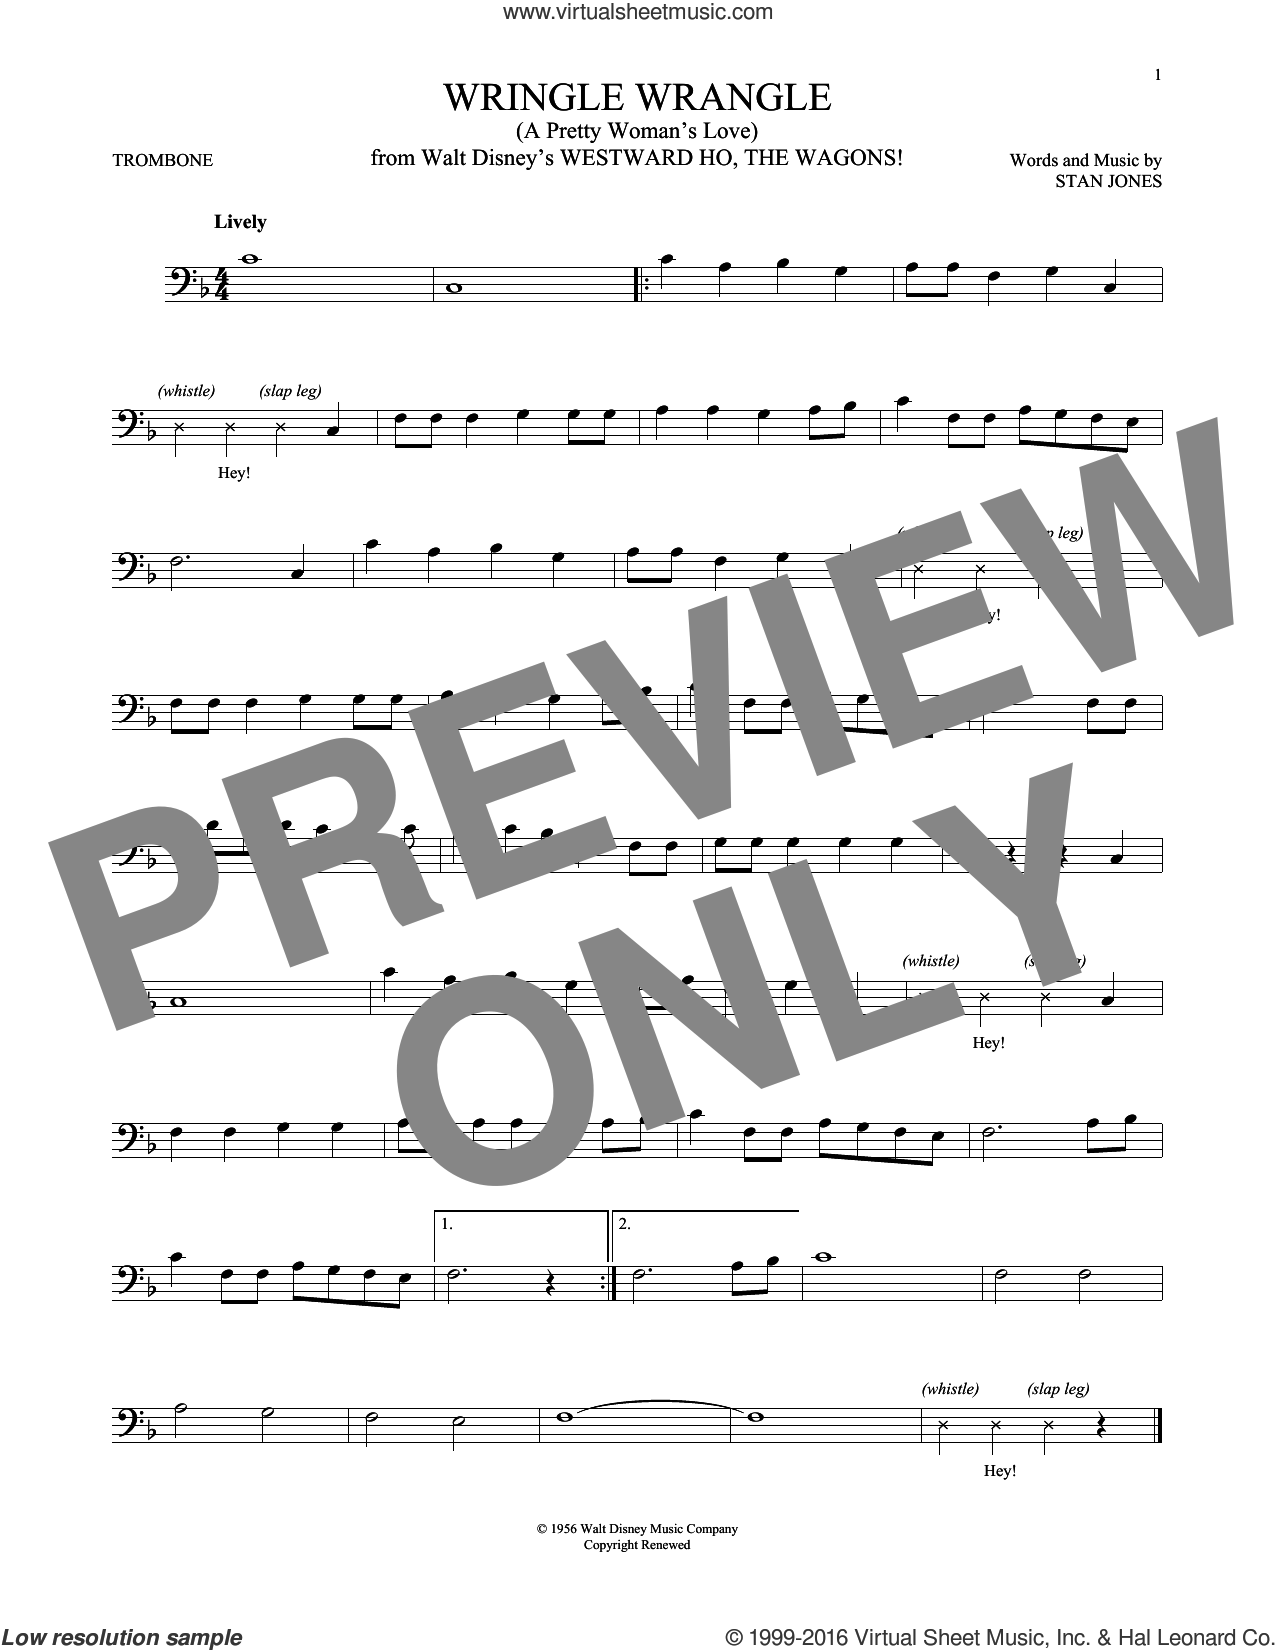 Wringle Wrangle (A Pretty Woman's Love) sheet music for trombone solo by Stan Jones, intermediate skill level